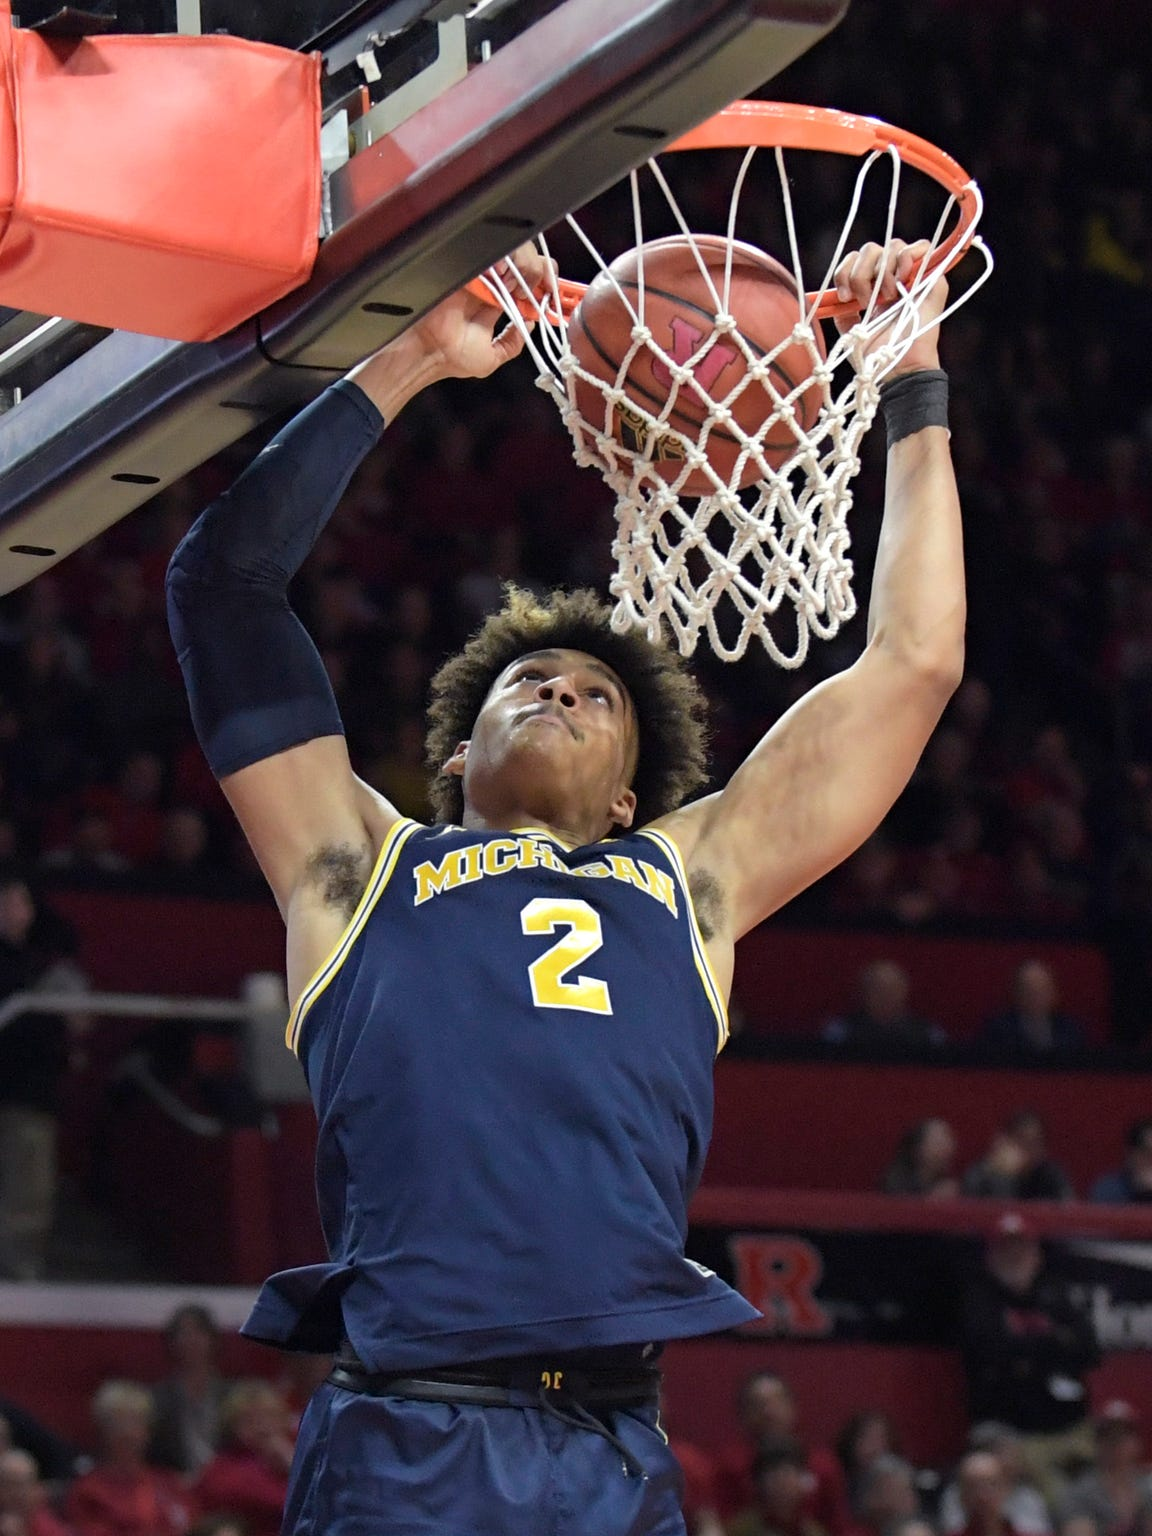 Michigan_Rutgers_Basketball_97616.jpg